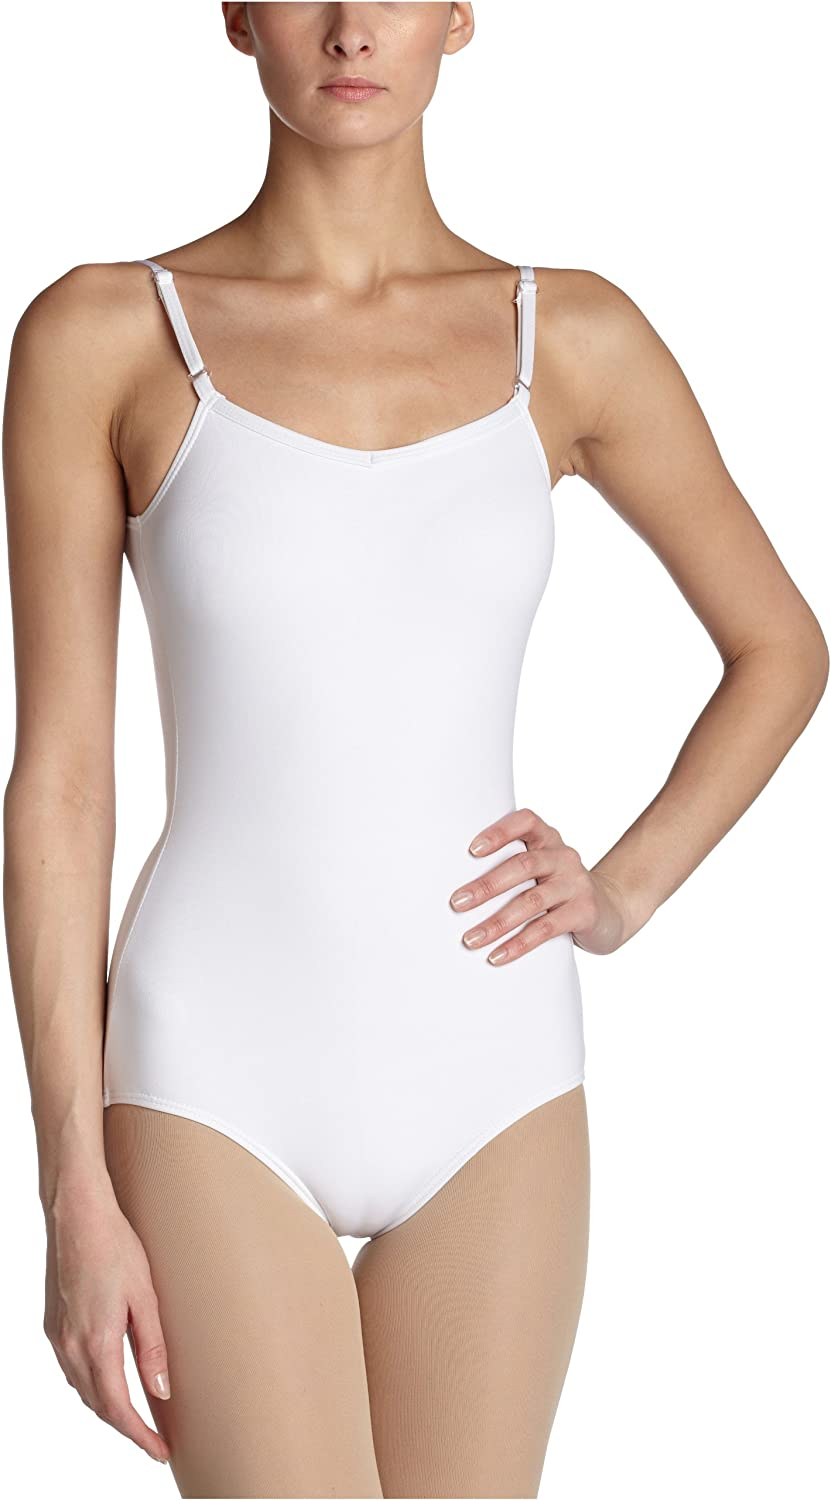 d8694adf7f21 Capezio Women's Camisole Leotard With Adjustable Straps: Amazon.in:  Clothing & Accessories